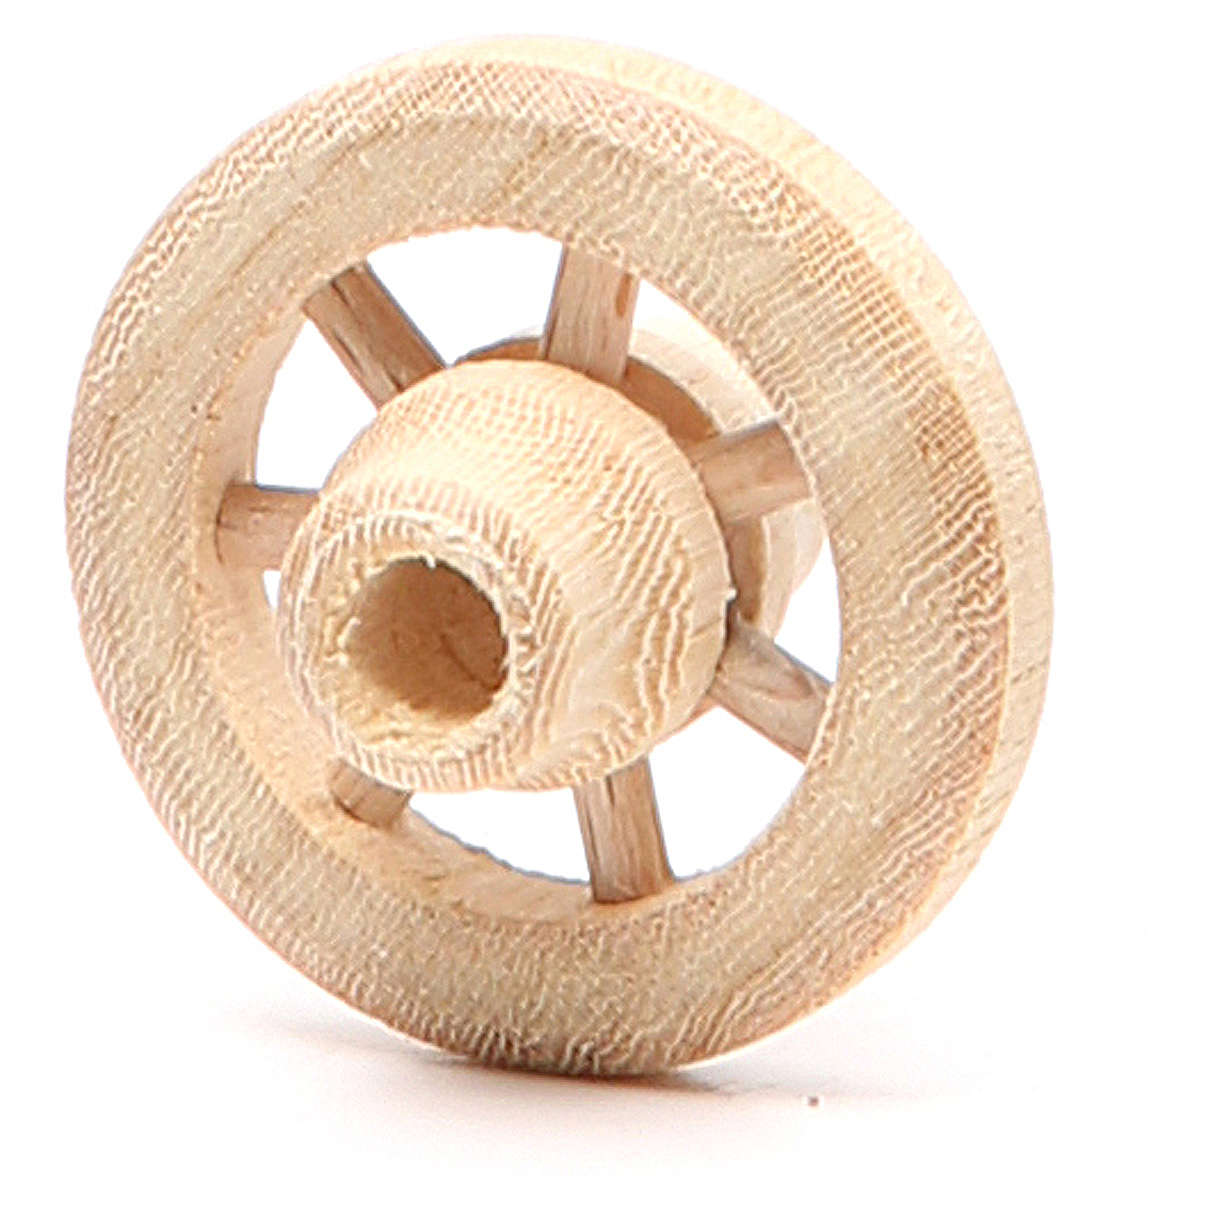 Wooden wheel 3.5cm diameter 4